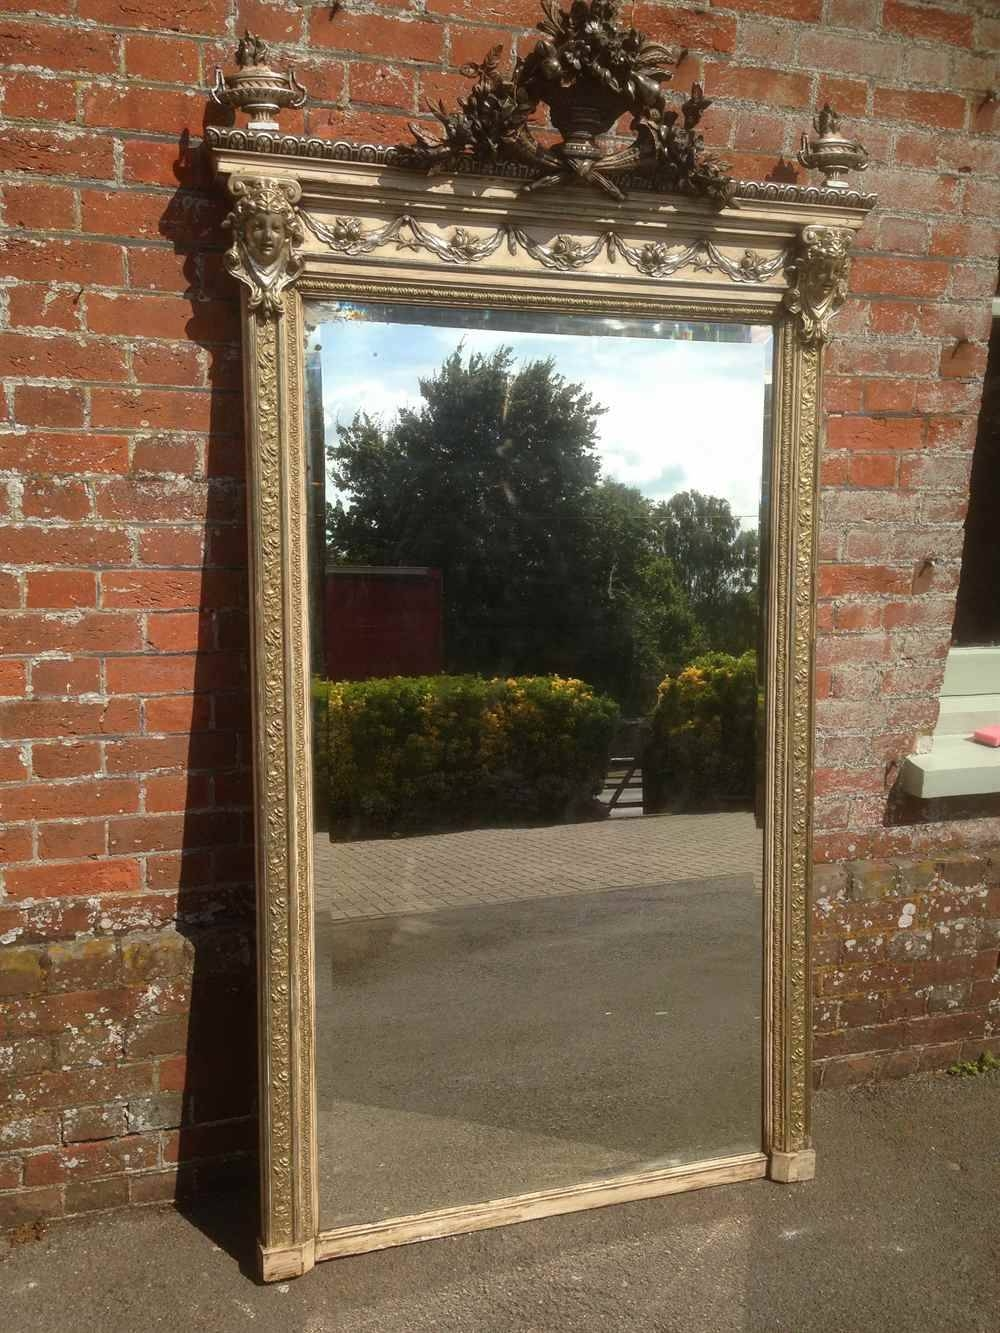 A Stunning Very Decorative Very Large Antique 19Th Century French regarding Antique Large Mirrors (Image 7 of 25)